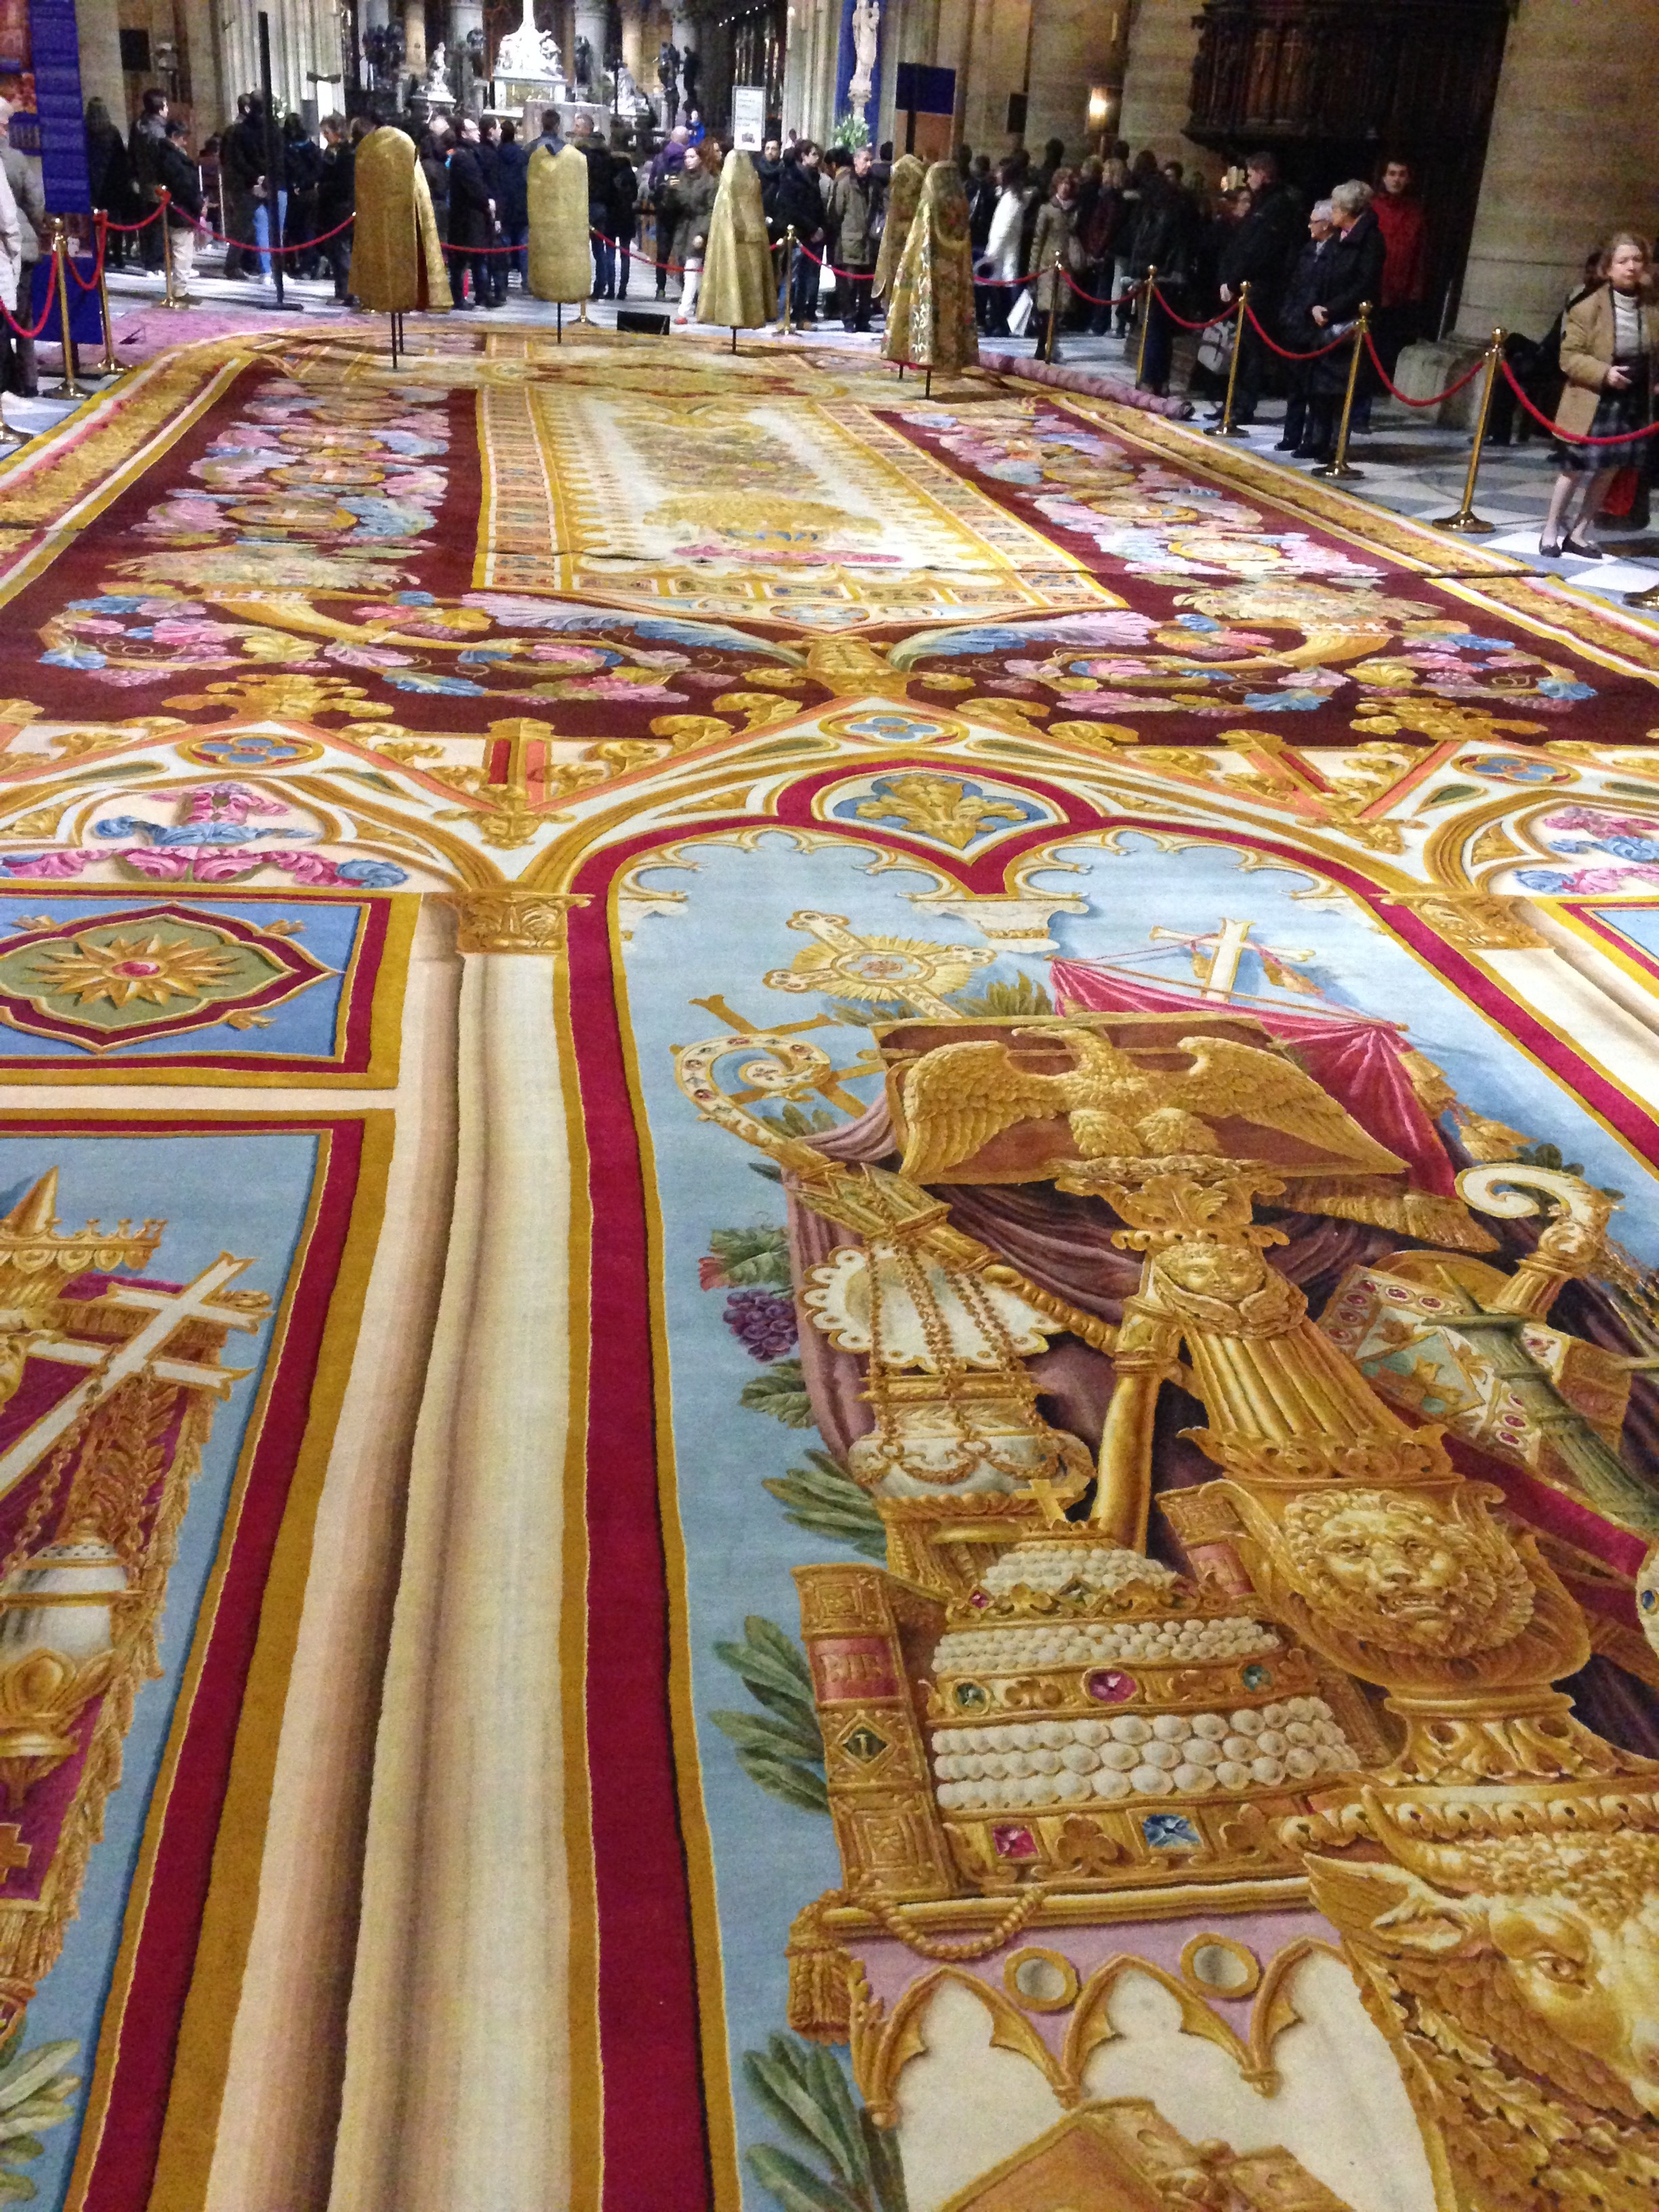 1000 images about tapis et tapisserie on pinterest persian tapestries and - Tapis saint maclou paris ...